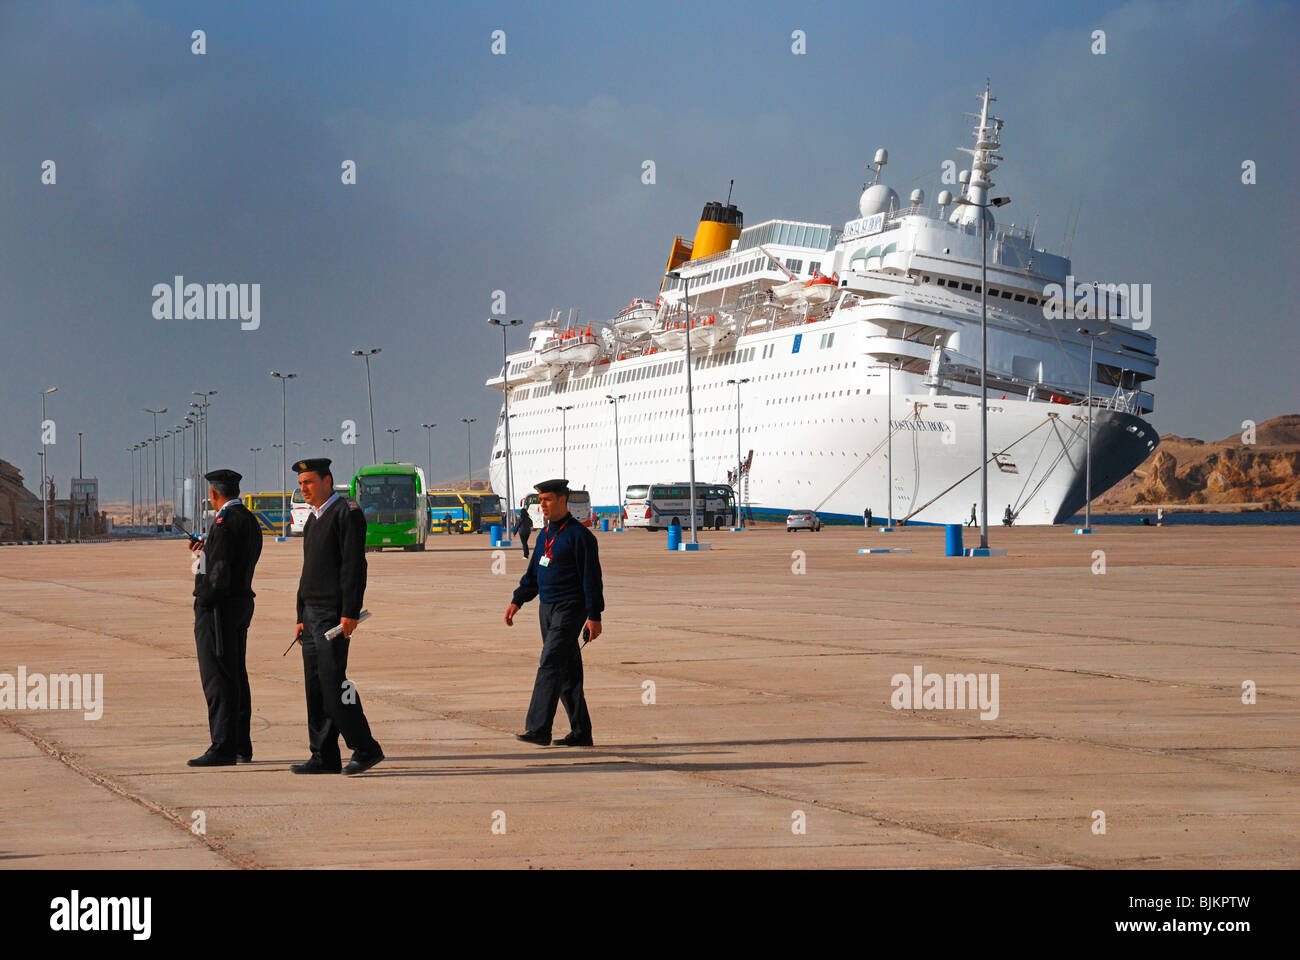 Listing COSTA EUROPA cruise ship after crashing into the quay, Egyptian officials in uniform, pier of Sharm el Sheikh - Stock Image